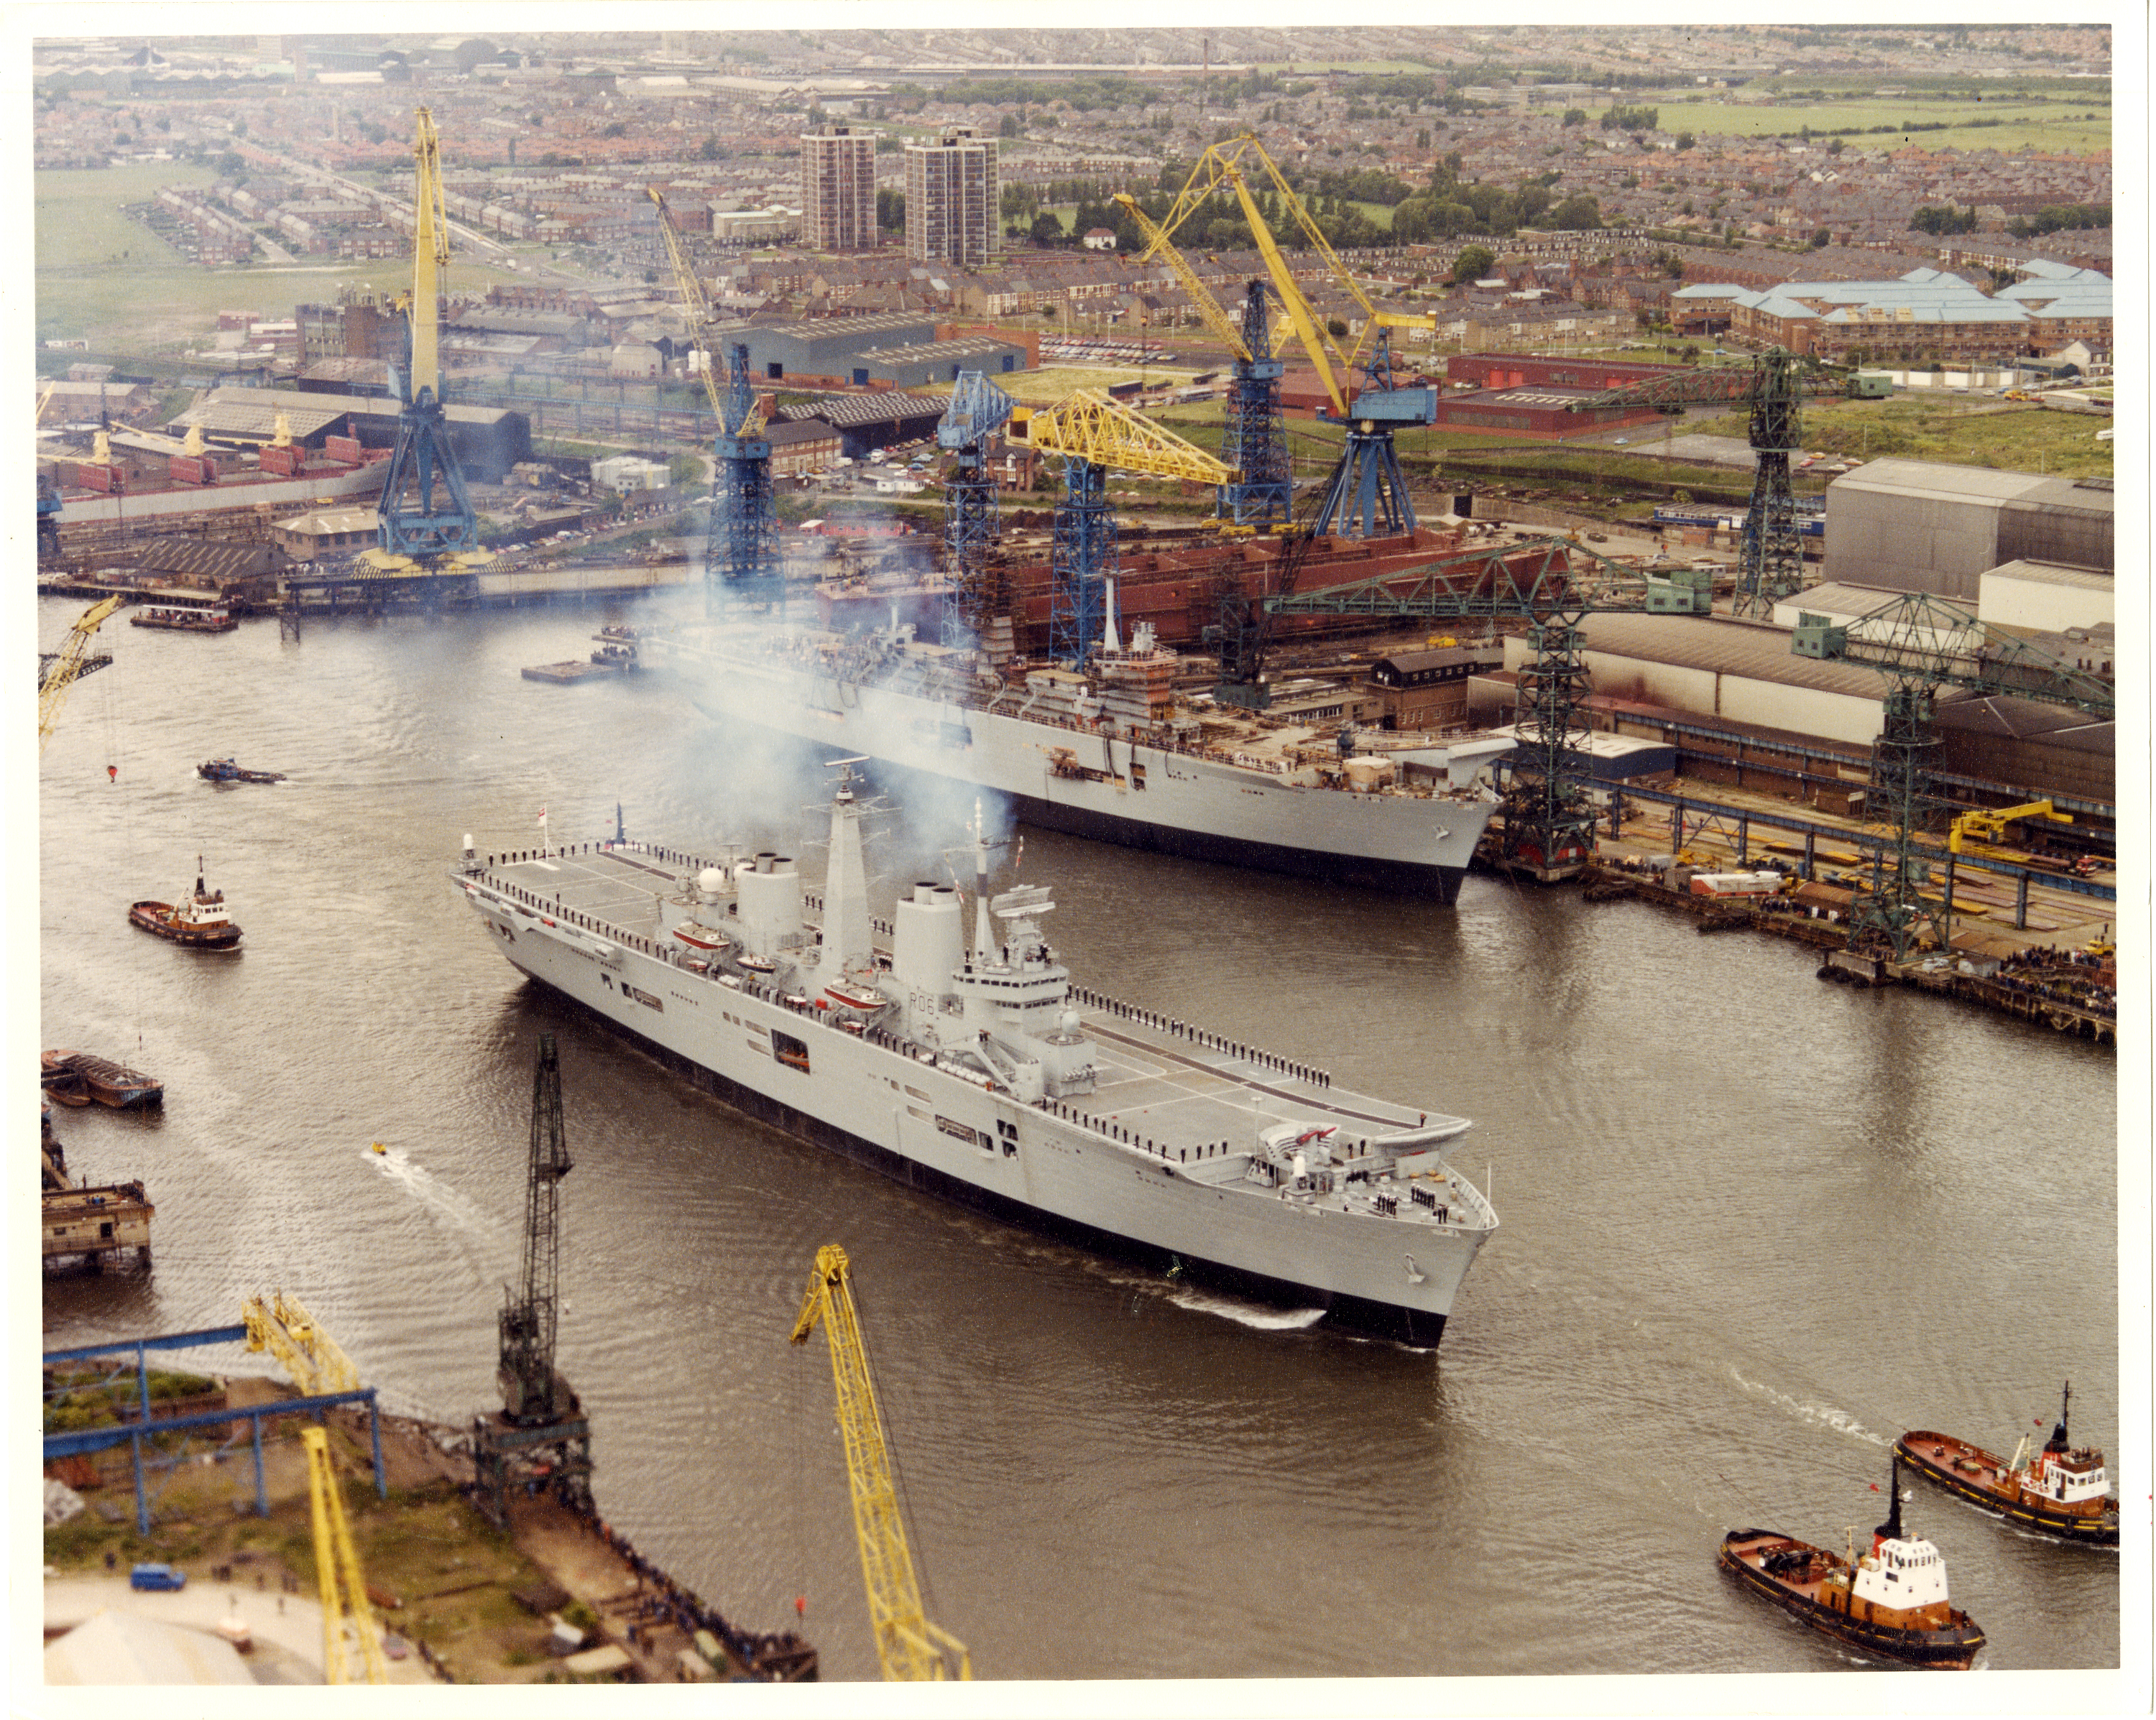 82-6-24-Passing Ark Royal in Tyneside